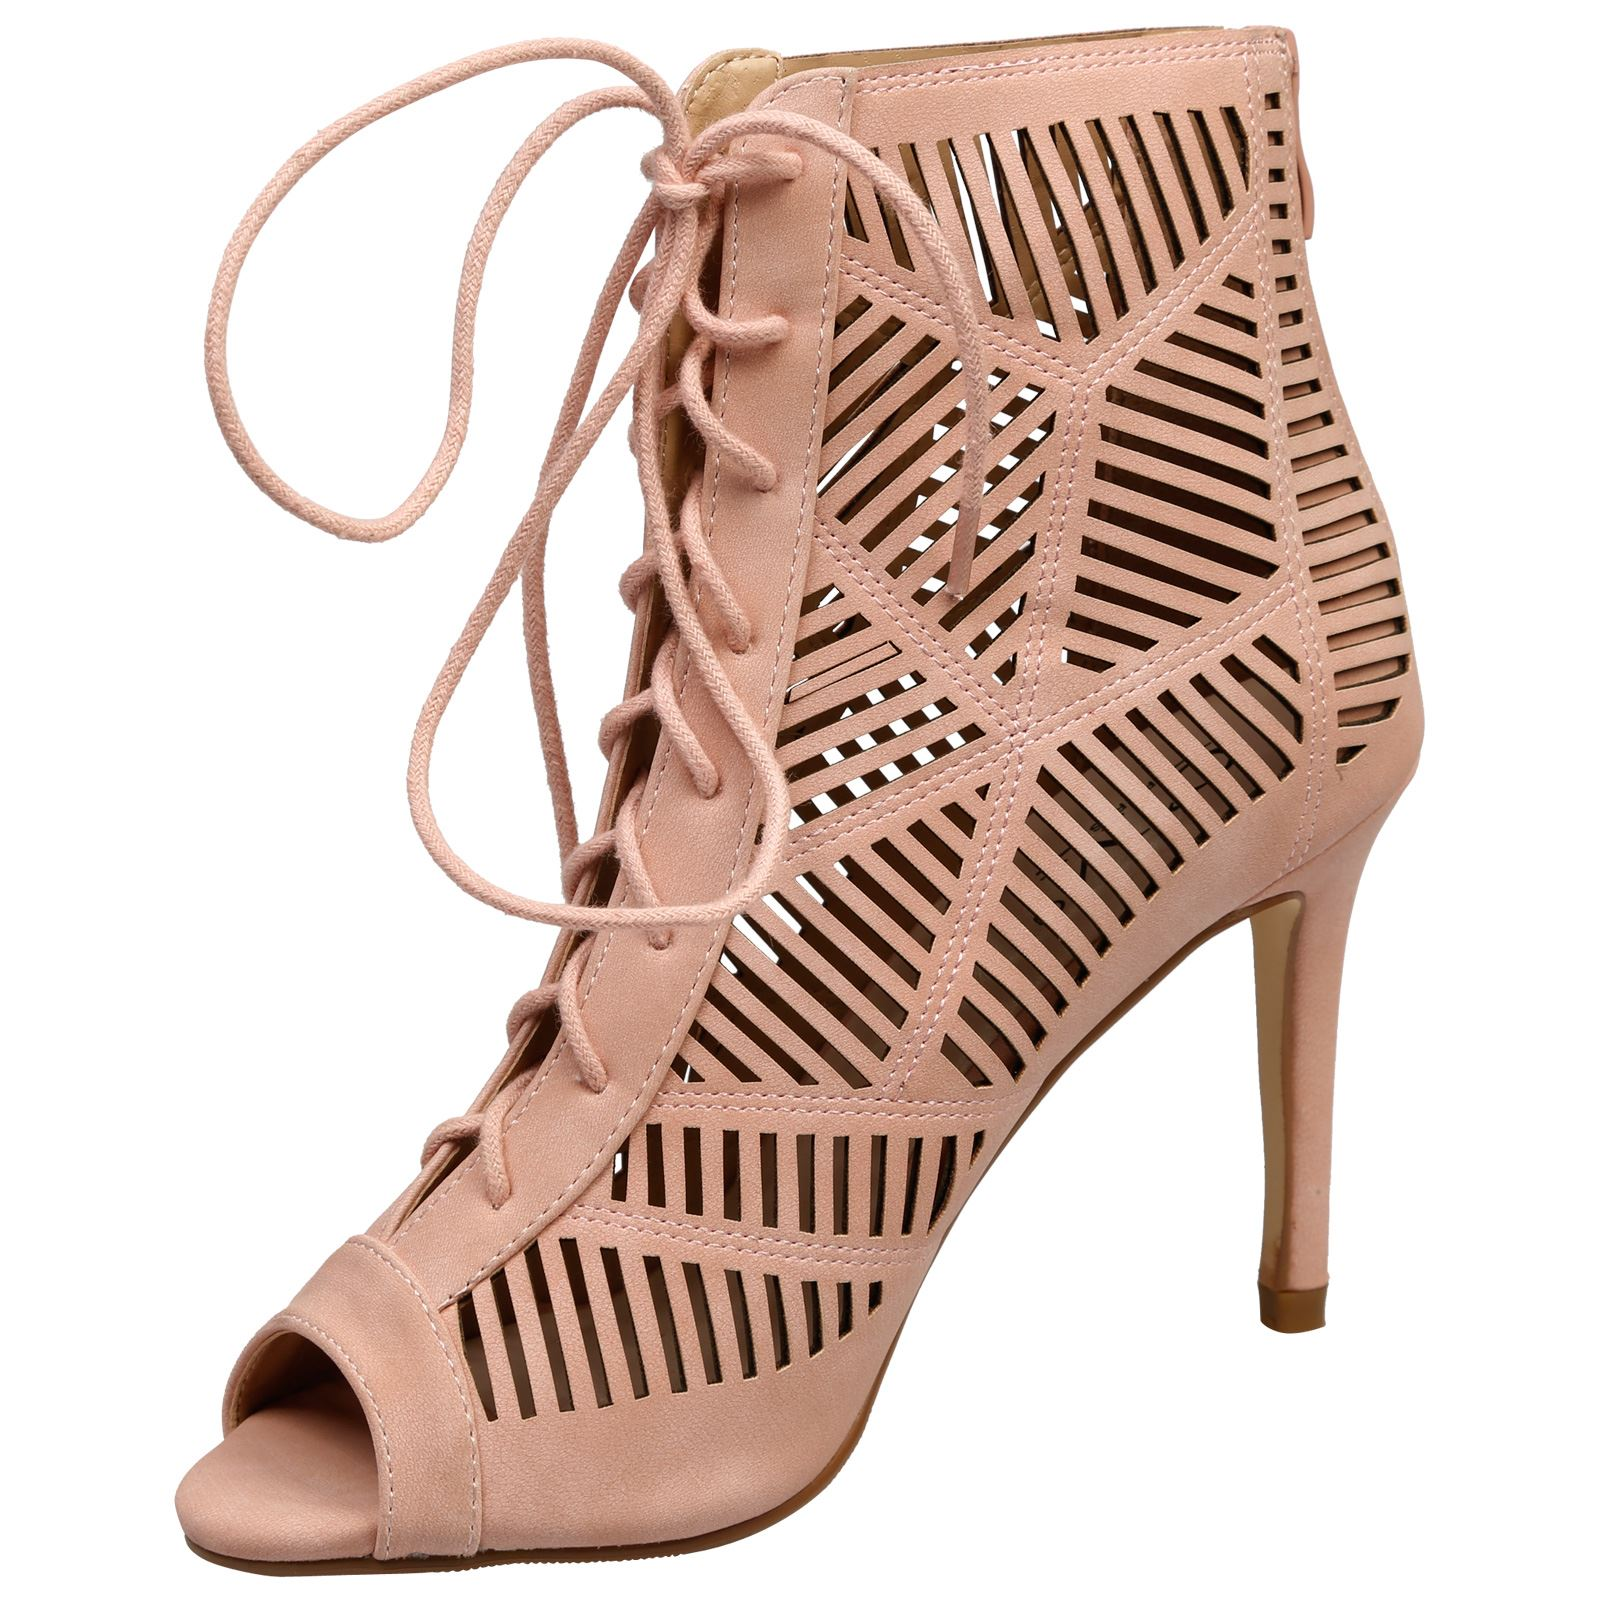 Anais-Womens-High-Heels-Stilettos-Lace-Up-Peep-Toe-Ankle-Boots-Ladies-Shoes-Size thumbnail 12